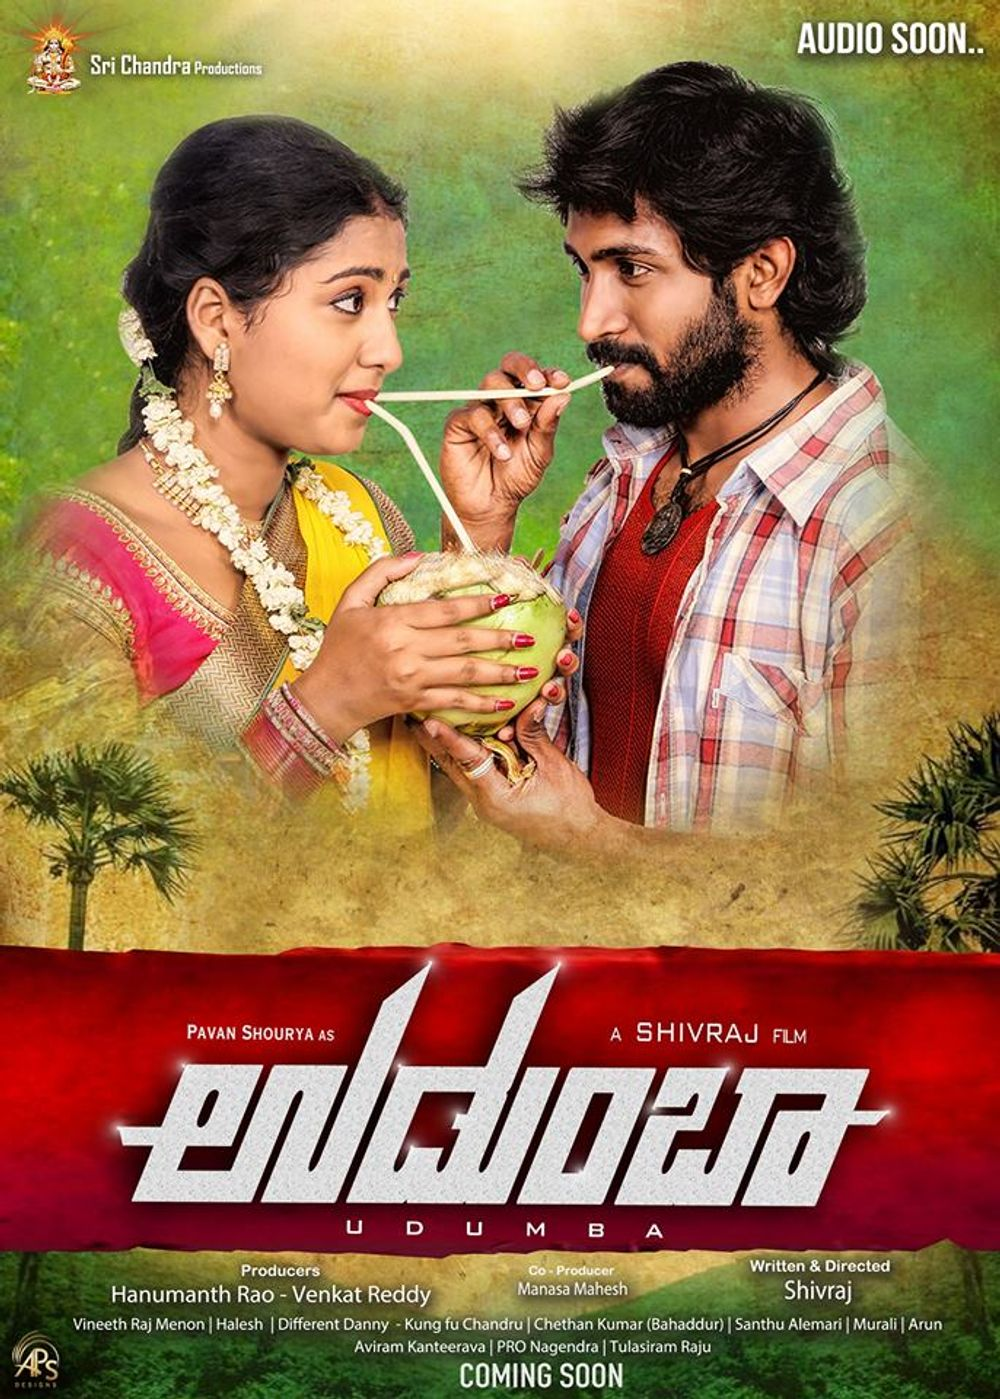 Udumba Movie Review